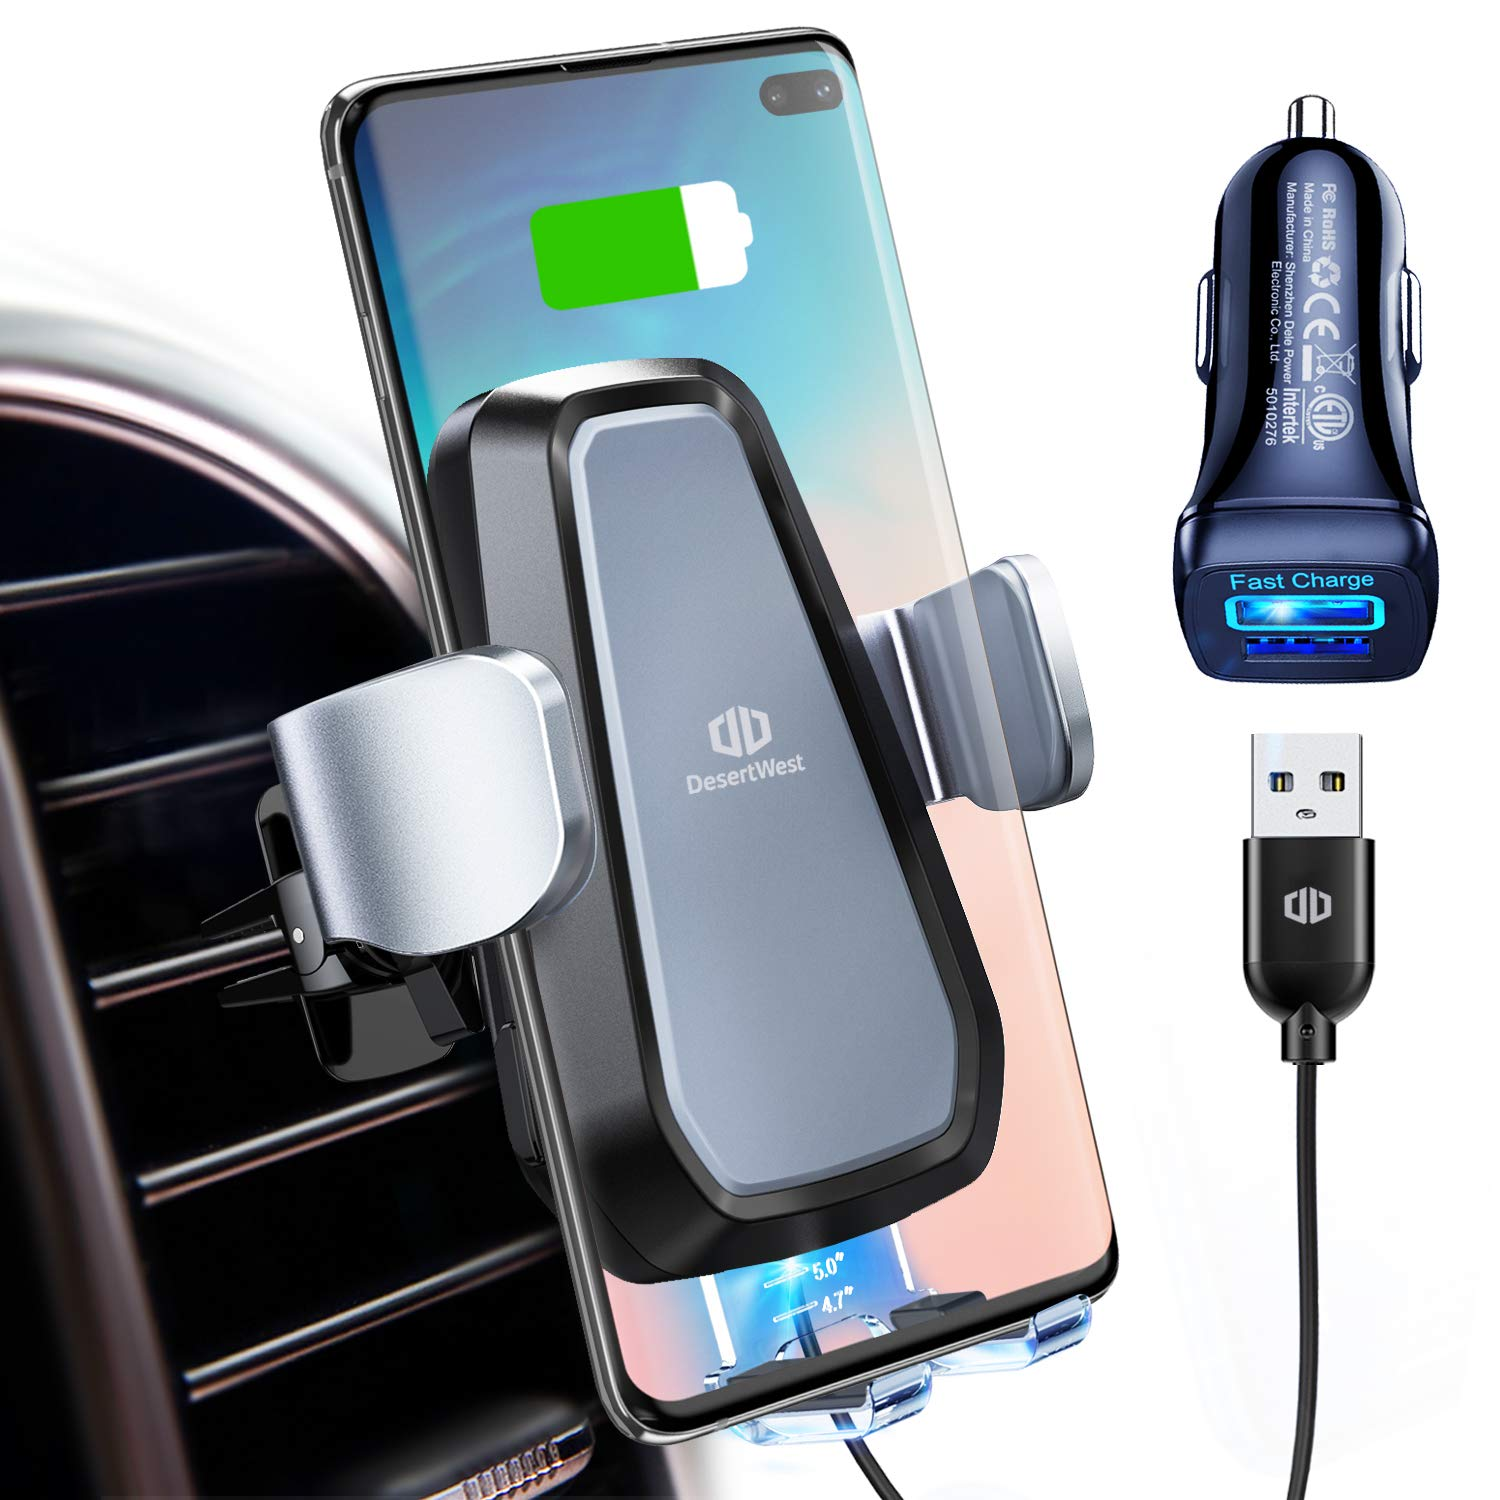 DesertWest Qi Wireless Car Charger Mount, Automatic Clamping, 10W/7.5W Fast Charging, Air Vent Motorized Cell Phone Holder for Car Compatible with iPhone Xs Max XR 8 Plus, Samsung S10 S9 S8, LG V30